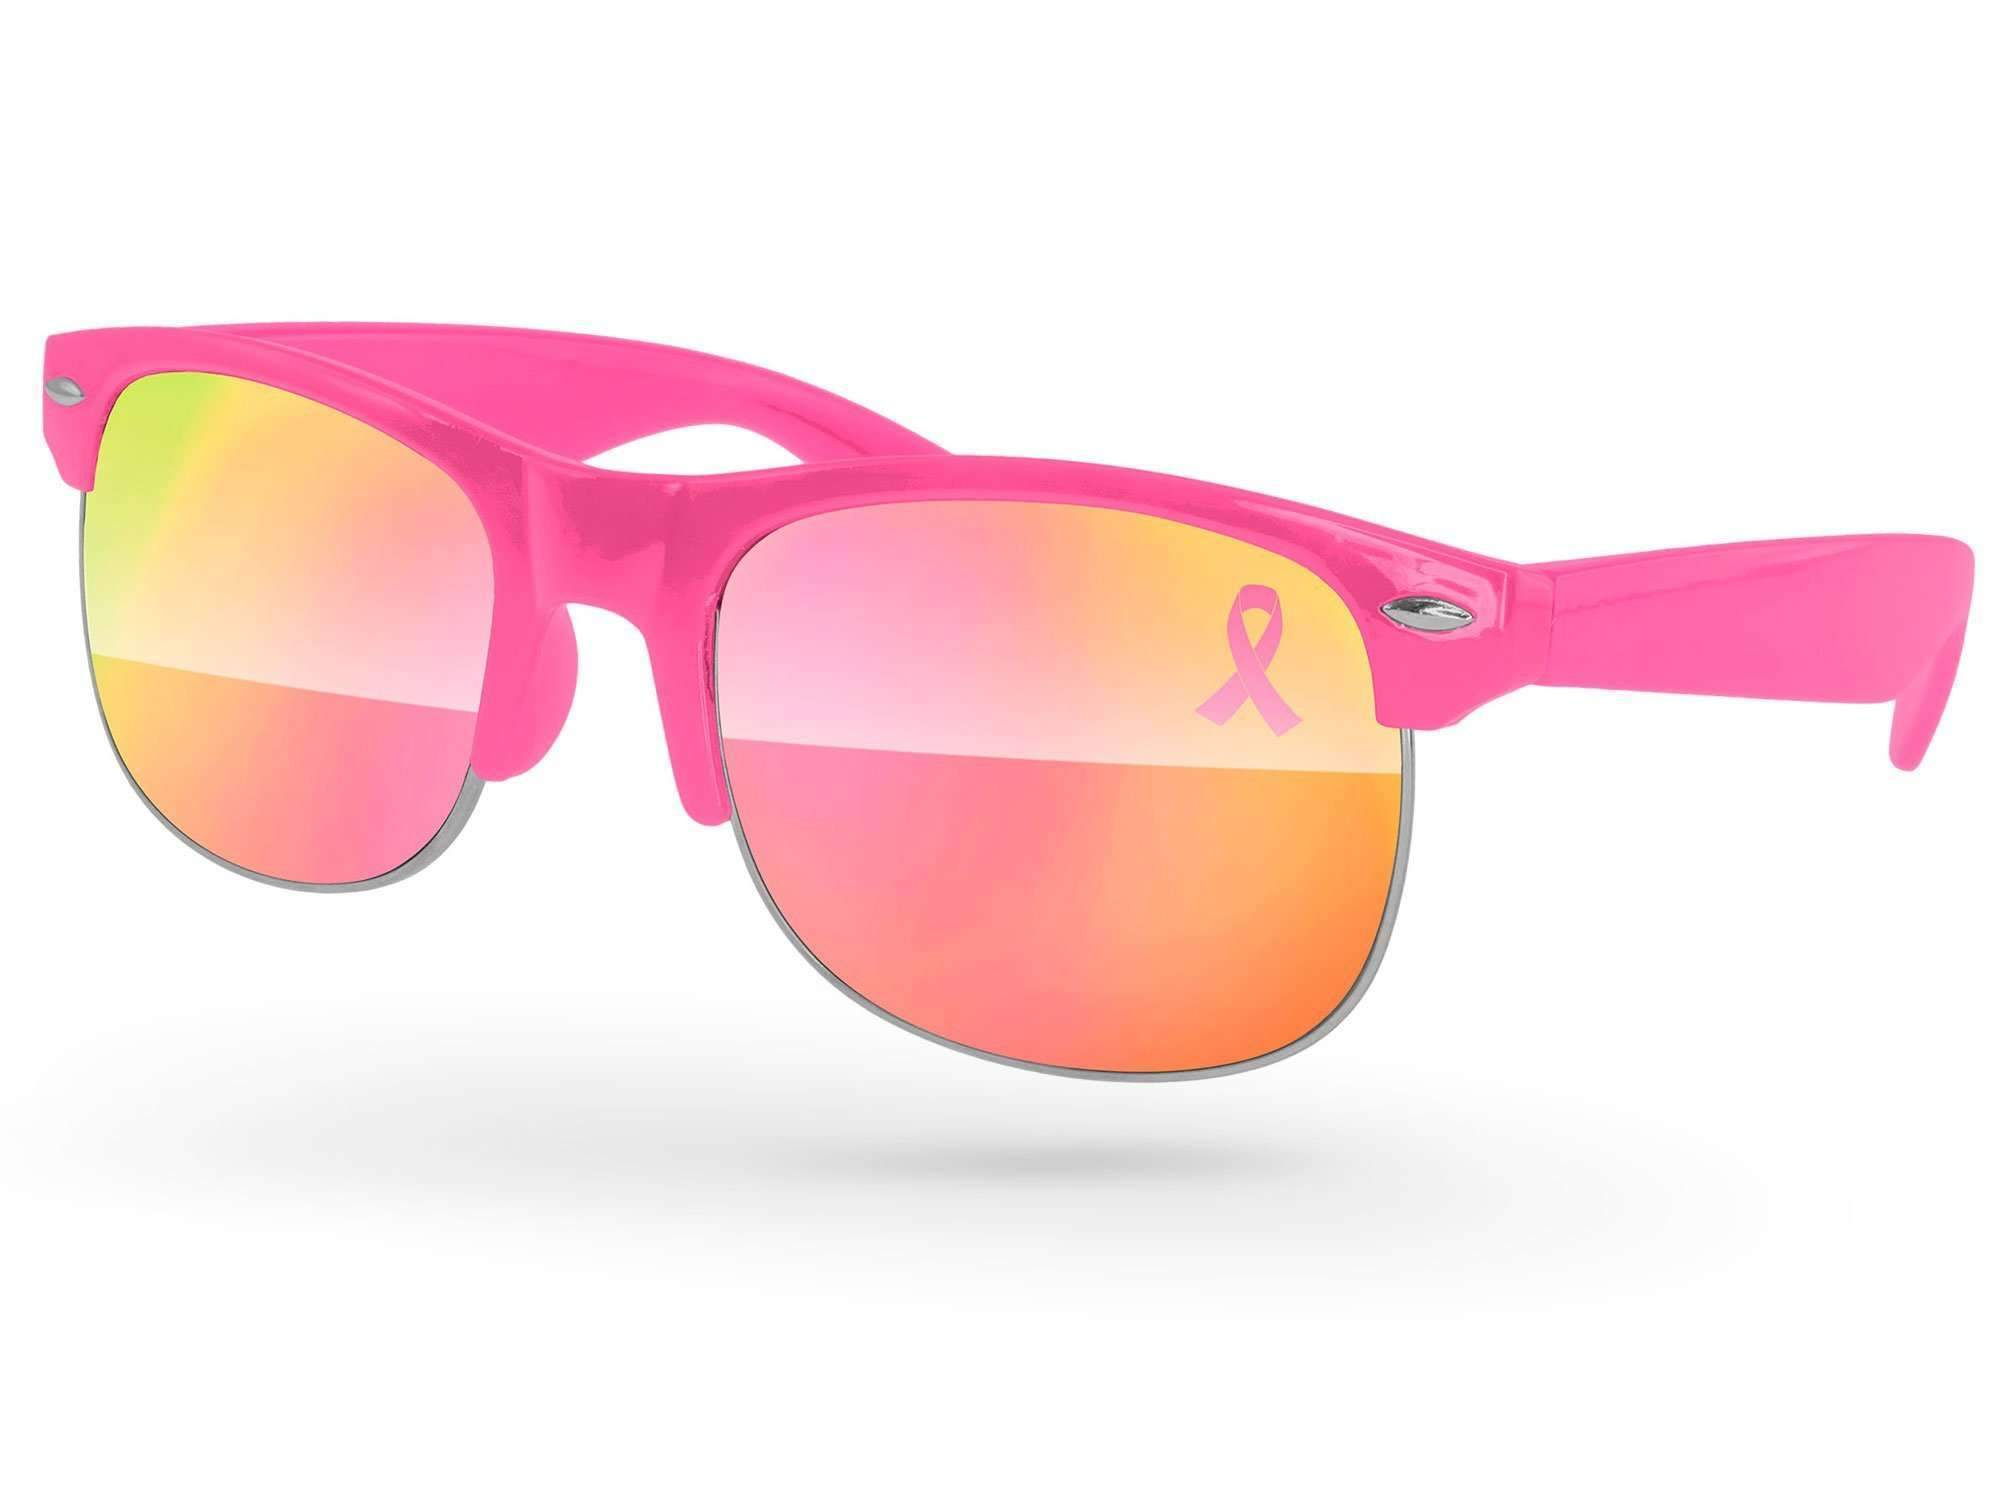 CM500 - Club Mirror Promotional Sunglasses w/ 1-color lens imprint